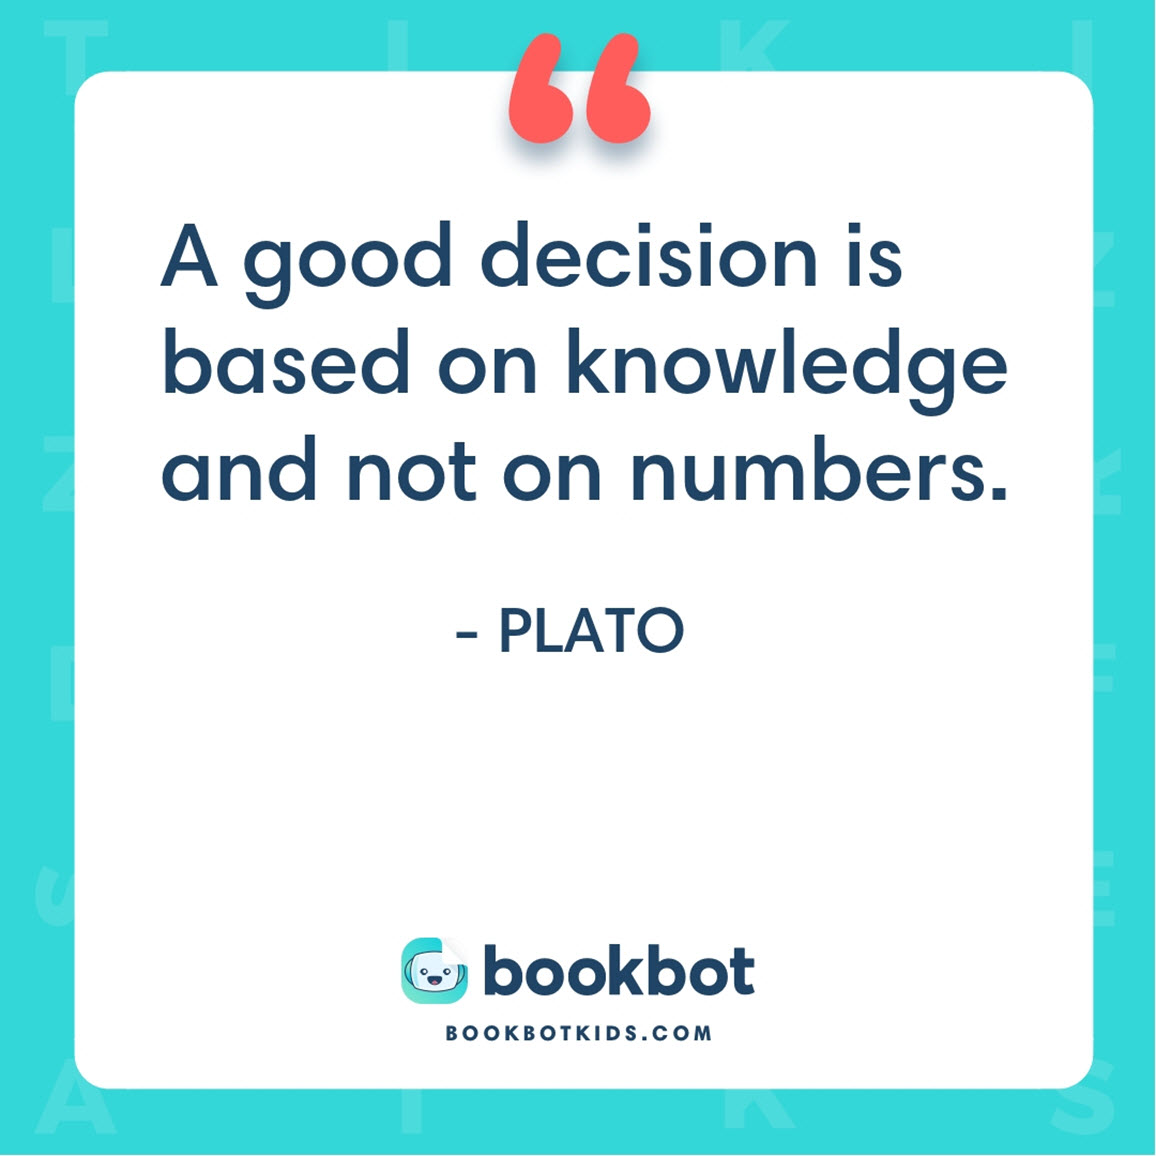 A good decision is based on knowledge and not on numbers. – Plato